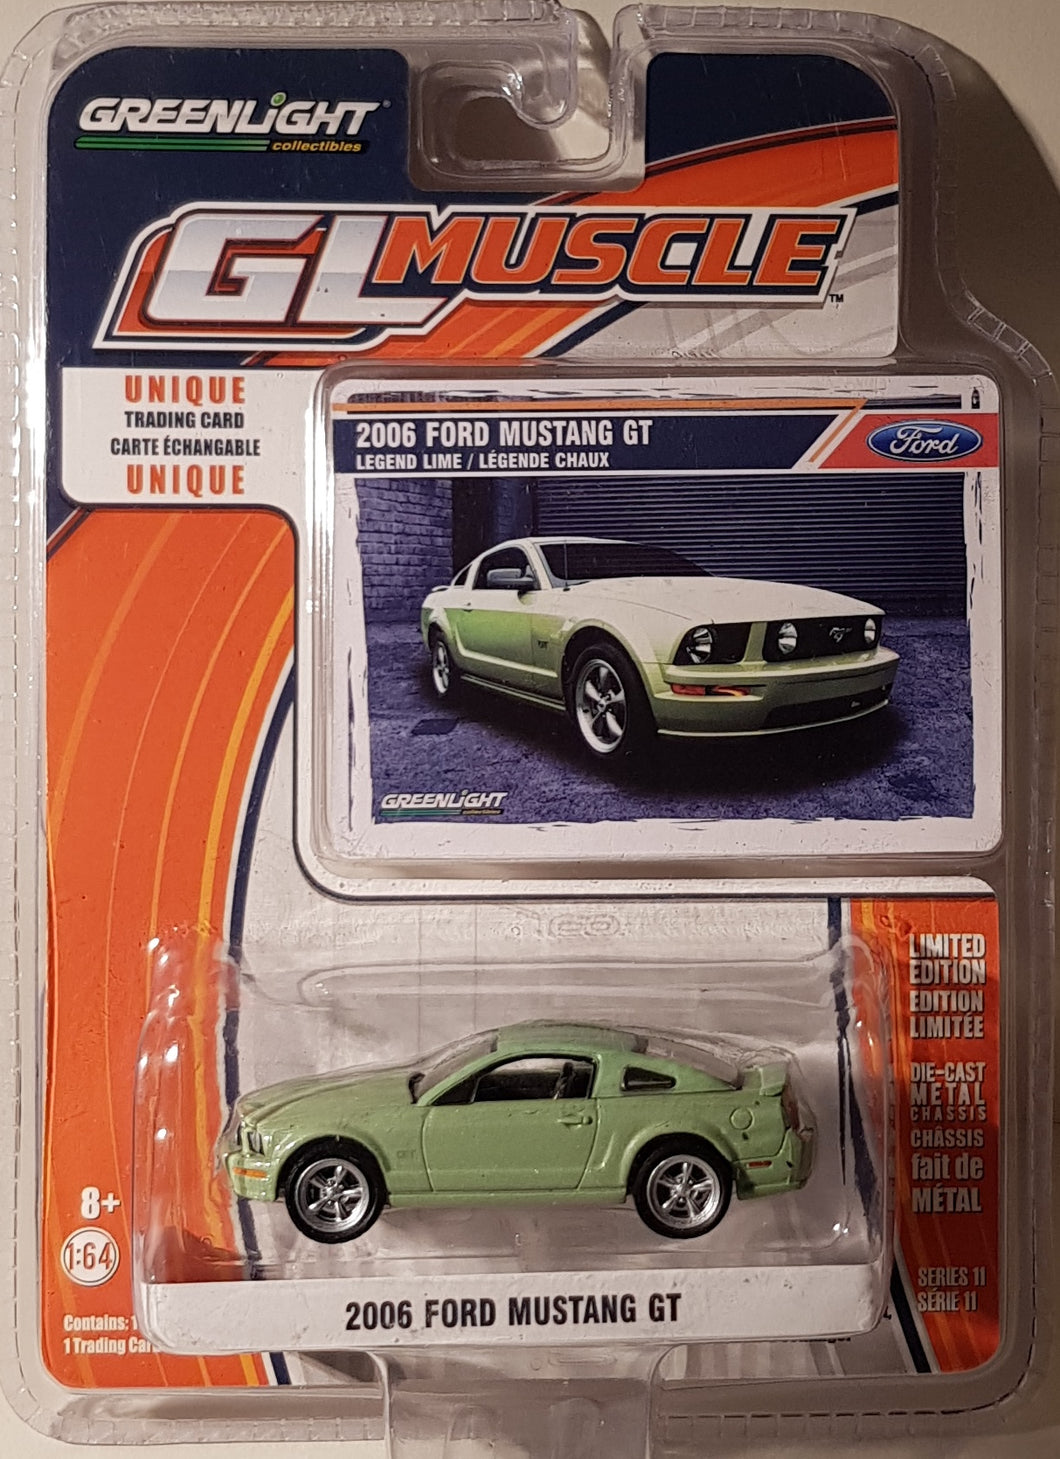 2006 Ford Mustang GT, Greenlight GL Muscle, 1:64 Diecast Vehicle